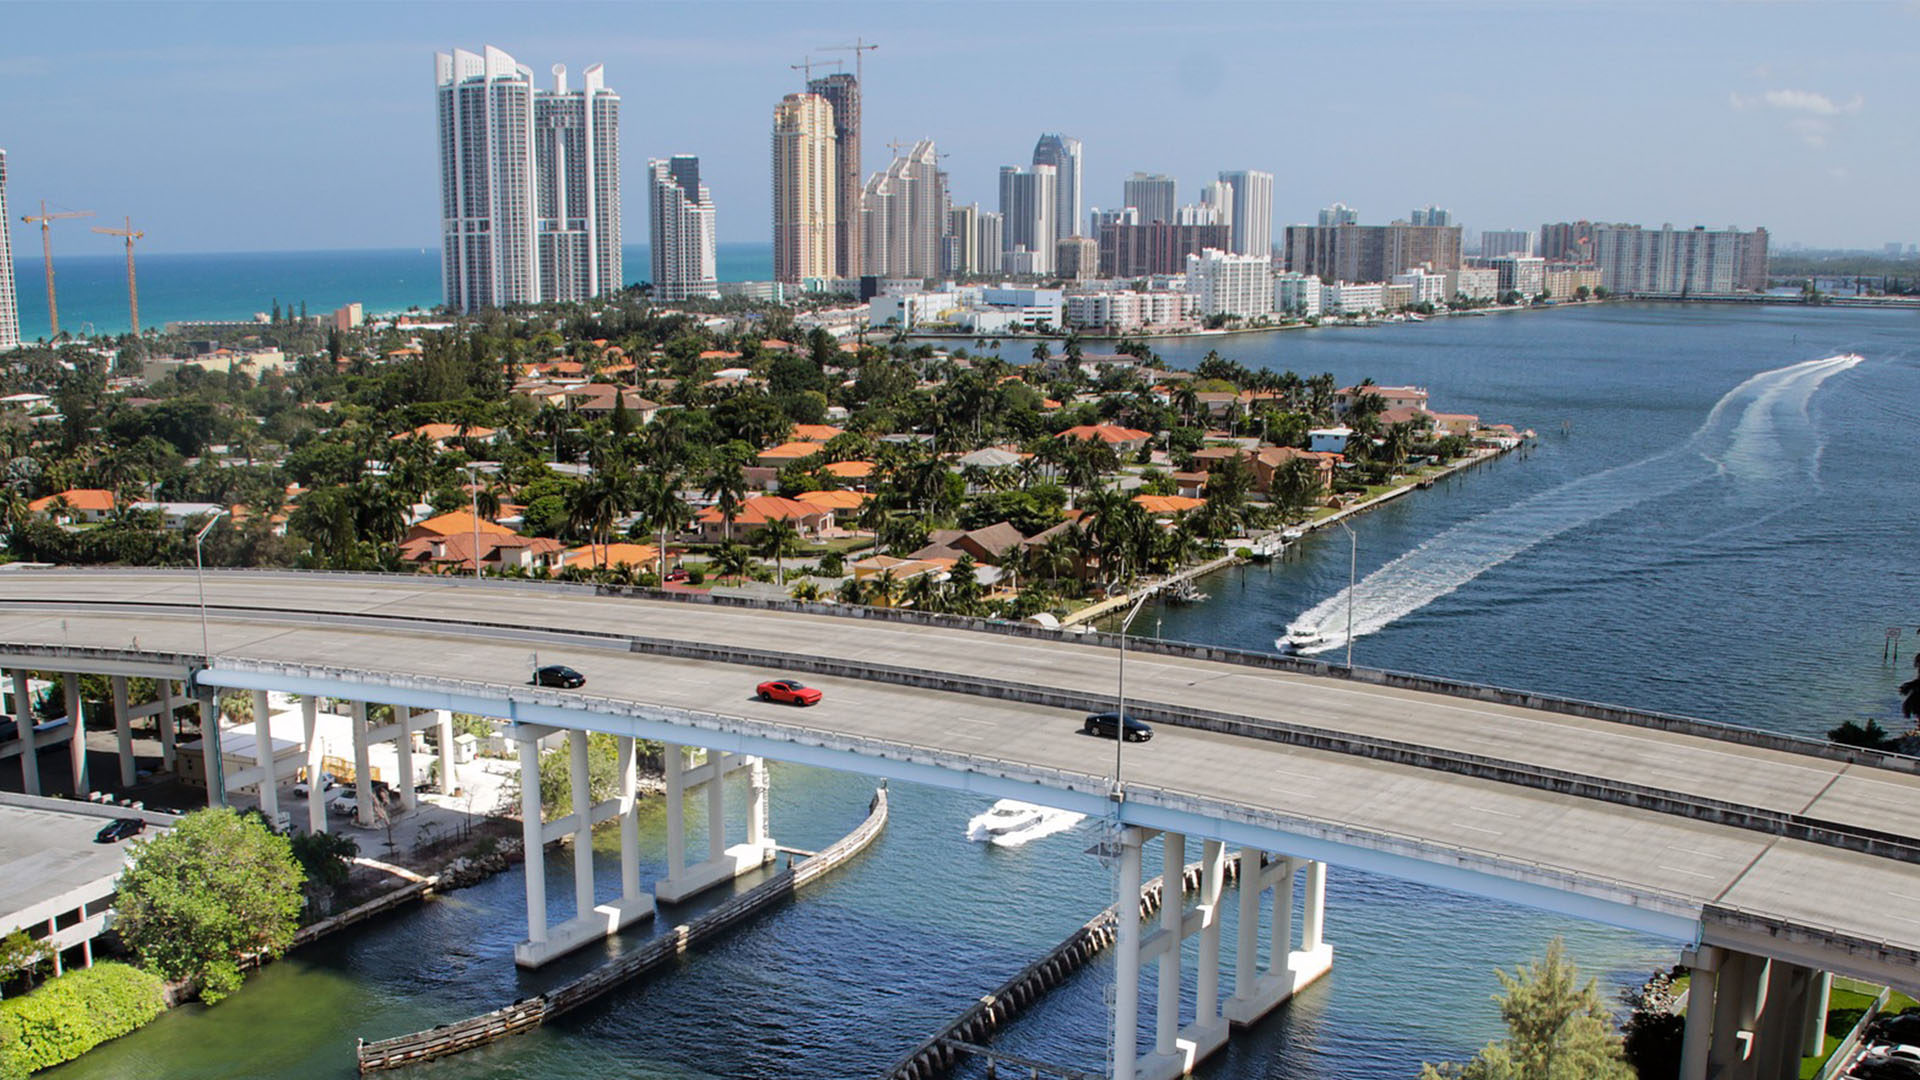 view of Miami Florida from above